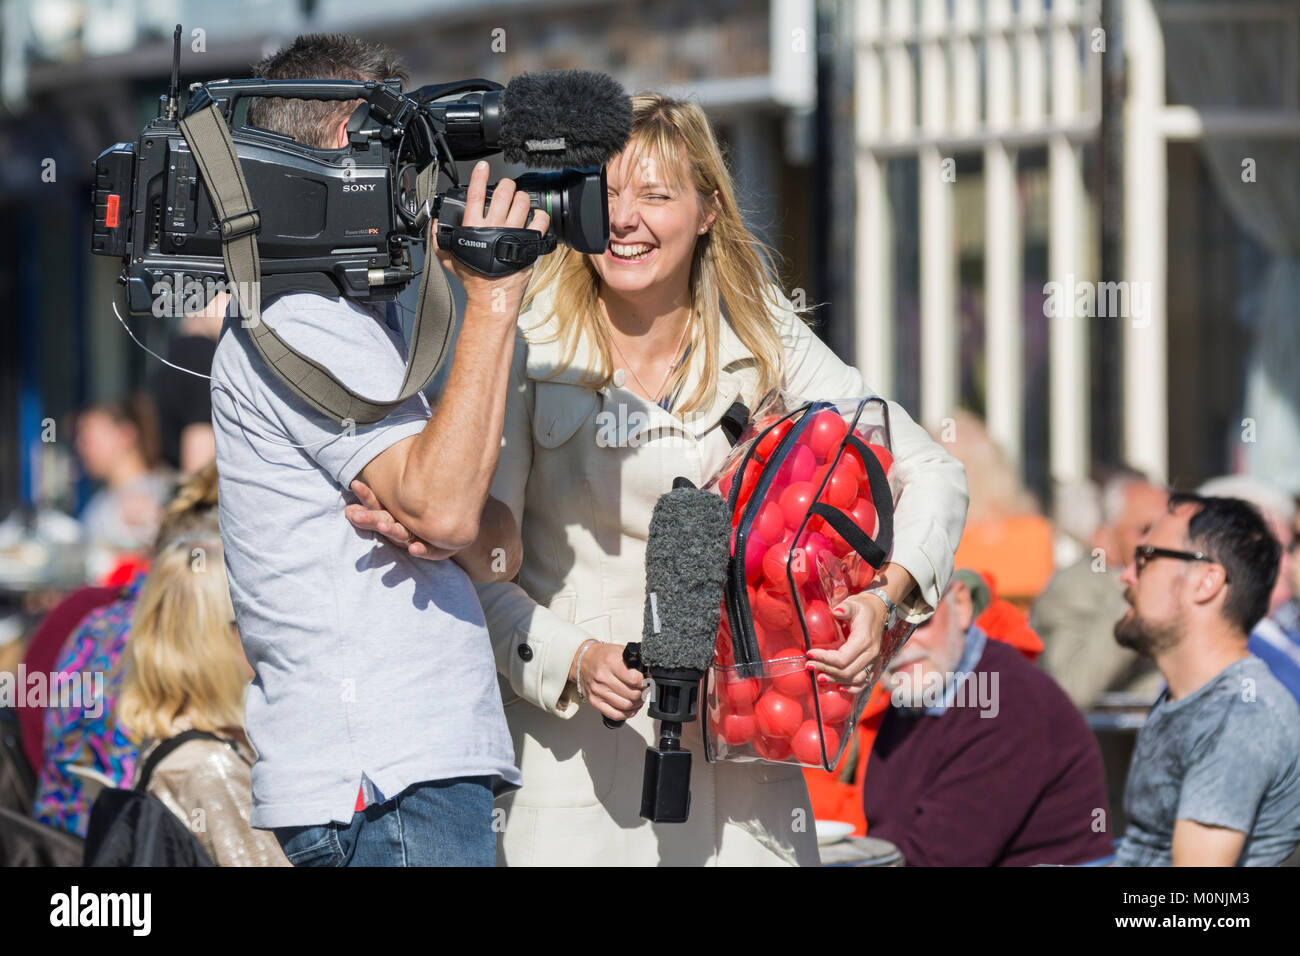 Female TV presenter laughing and smiling on the job, on an outside broadcast in the UK. Stock Photo